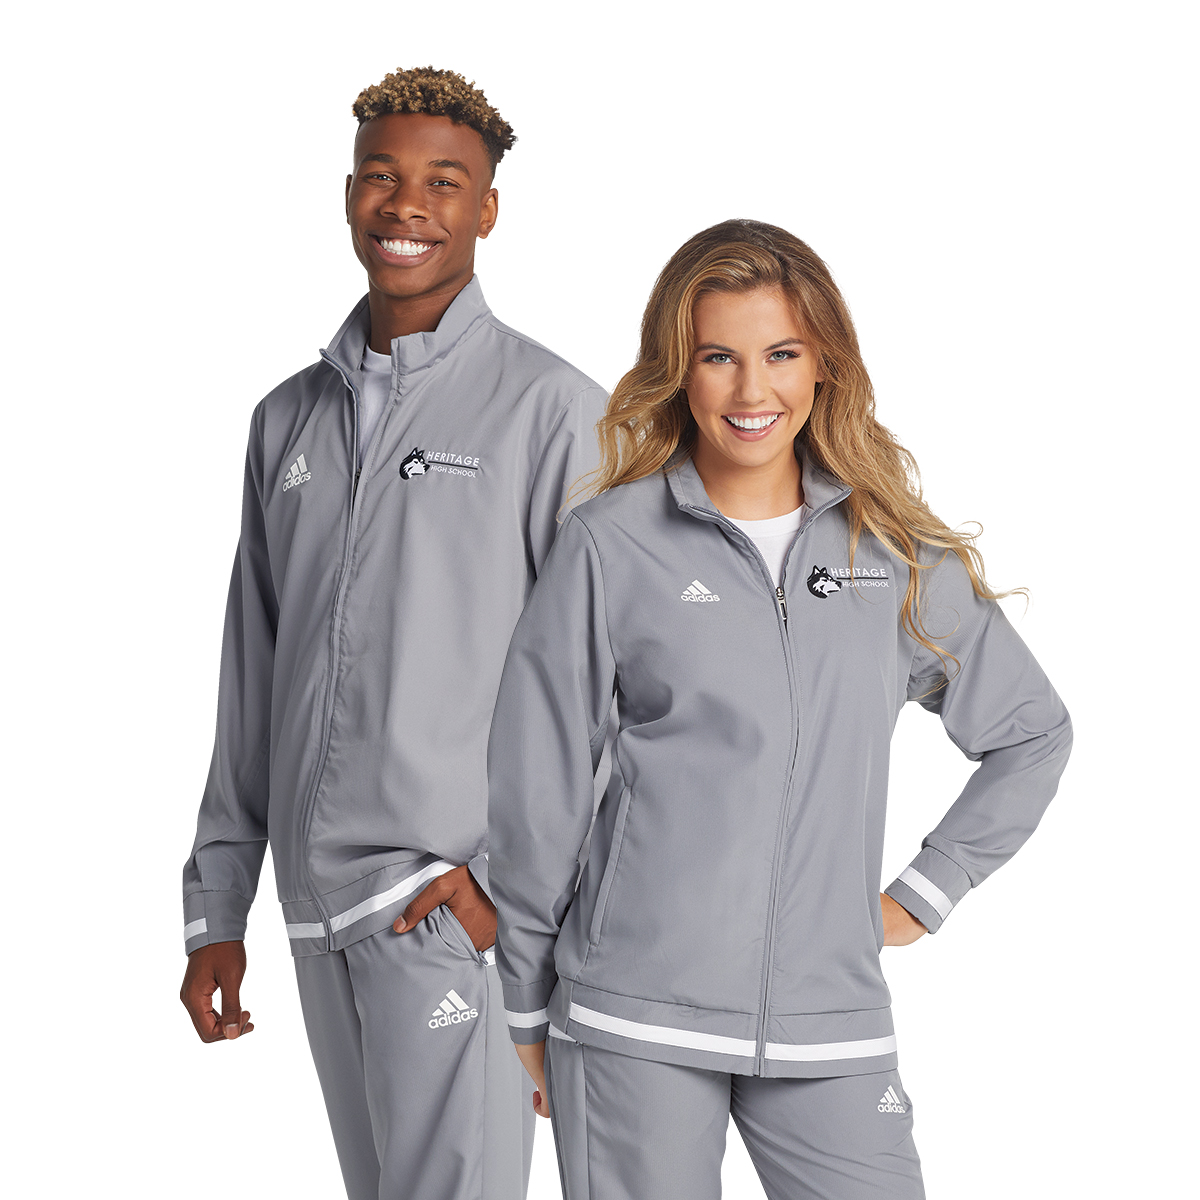 Warm-up Jackets | Marching Band Uniforms, Marching Band